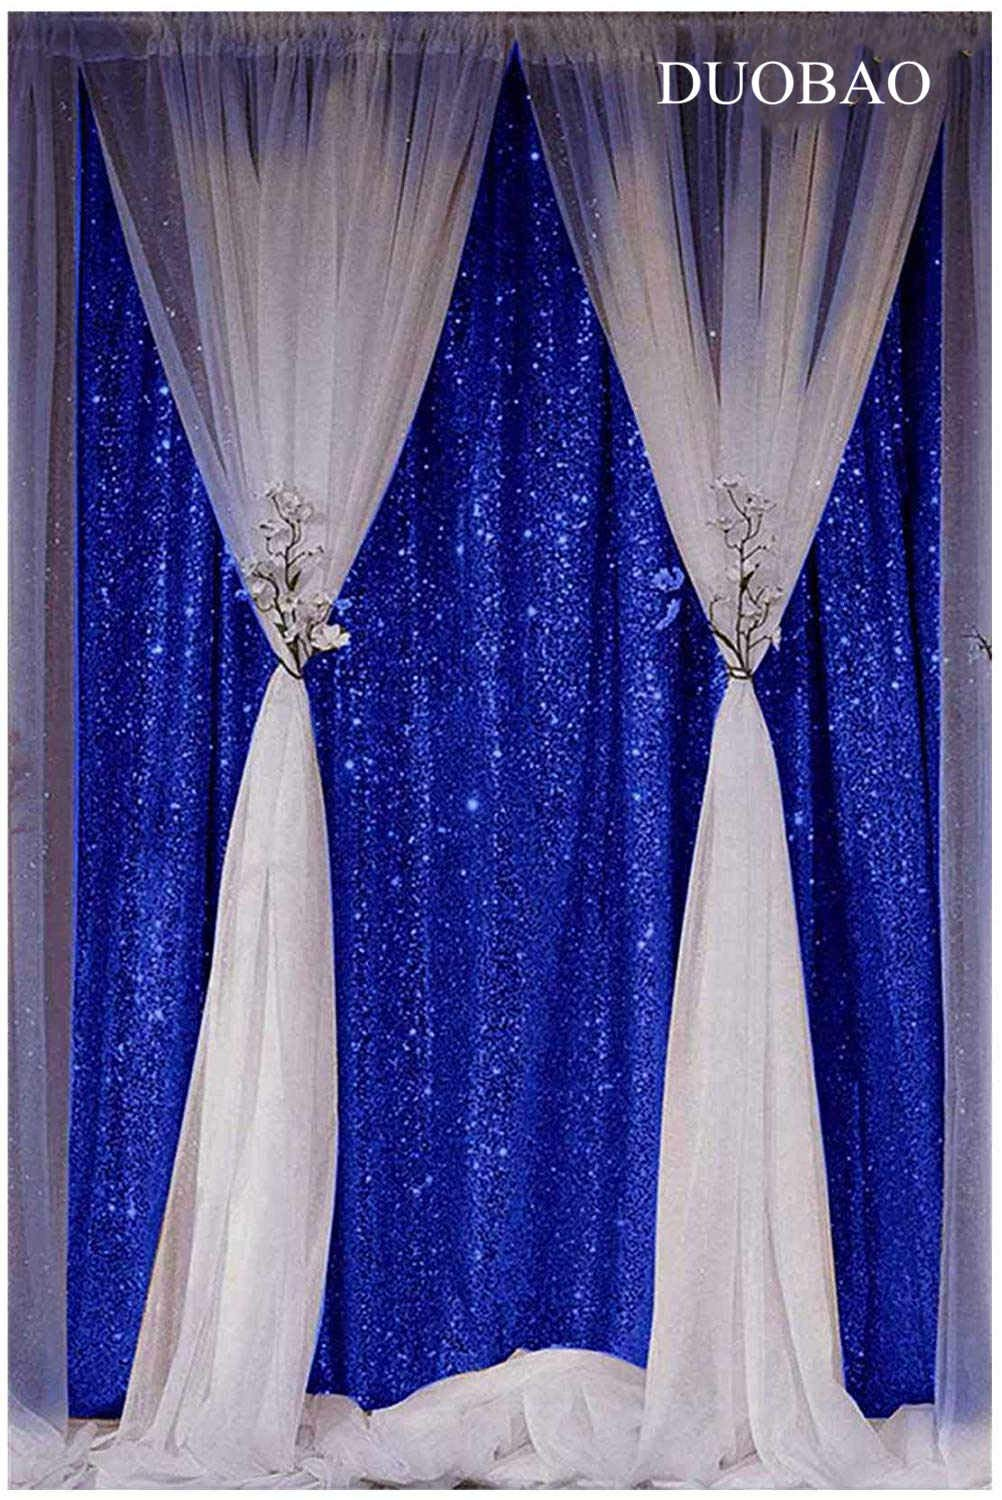 DUOBAO Sequin Backdrop Curtain 4FTx6FT Royal Blue Glitter Background Royal Blue Sequin Photo Backdrop Prom Party Decor~0613 by DUOBAO